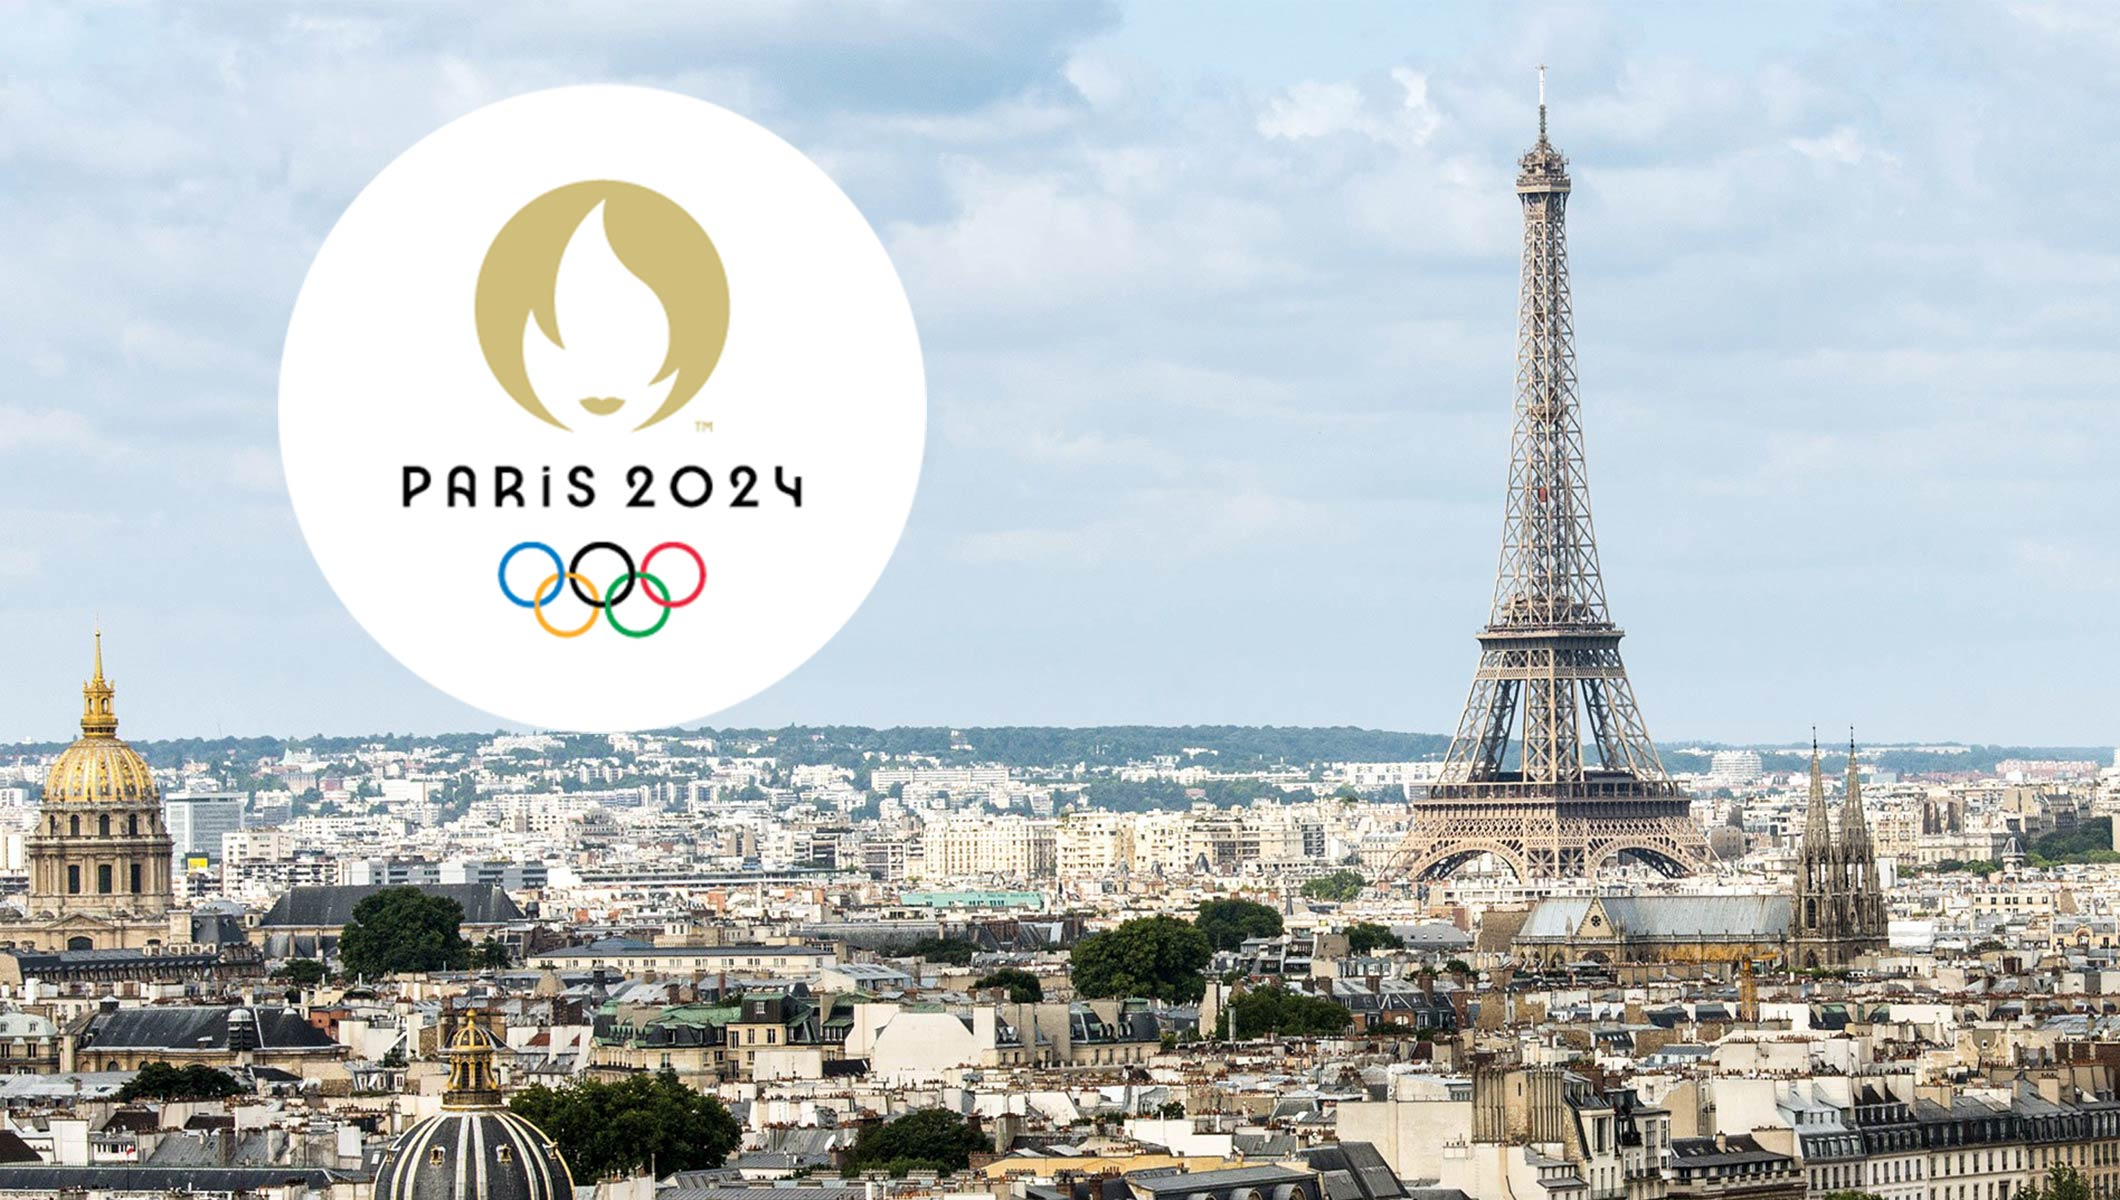 Paris 20 Summer Olympics   Summer Olympic Games in France